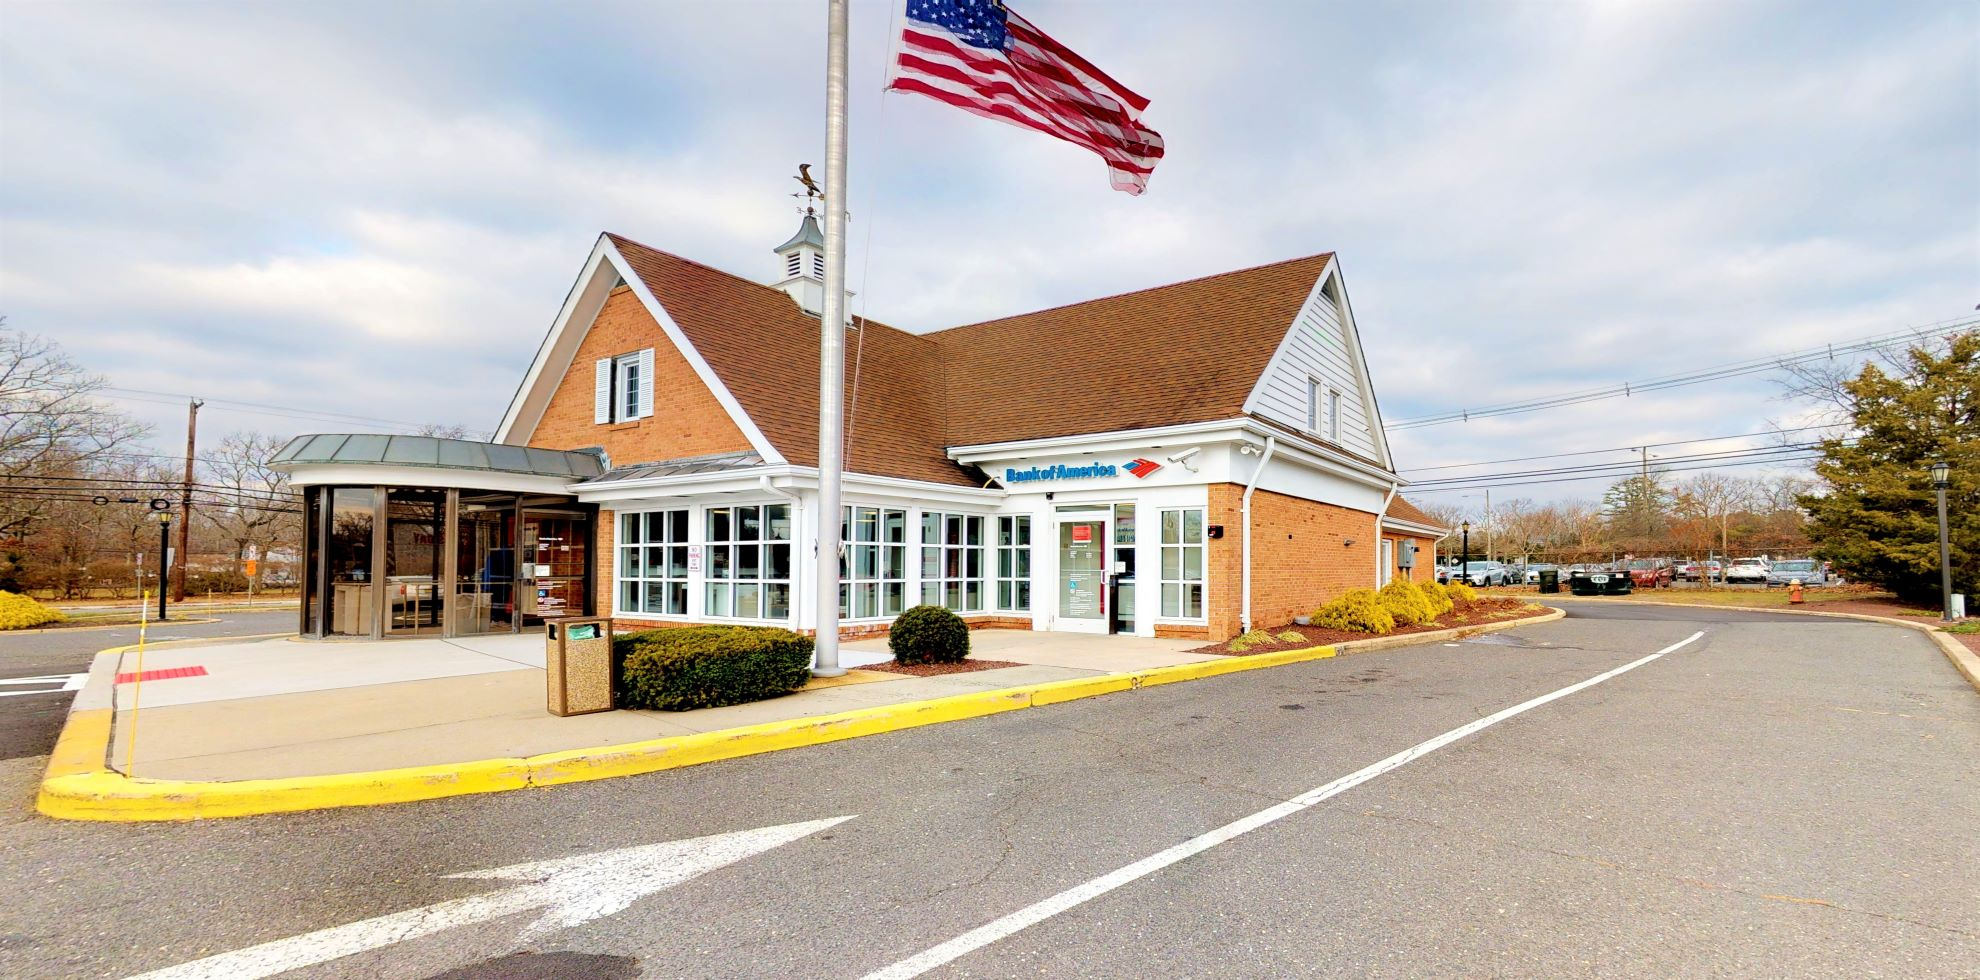 Bank of America financial center with drive-thru ATM | 4005 Route 9 N, Howell, NJ 07731